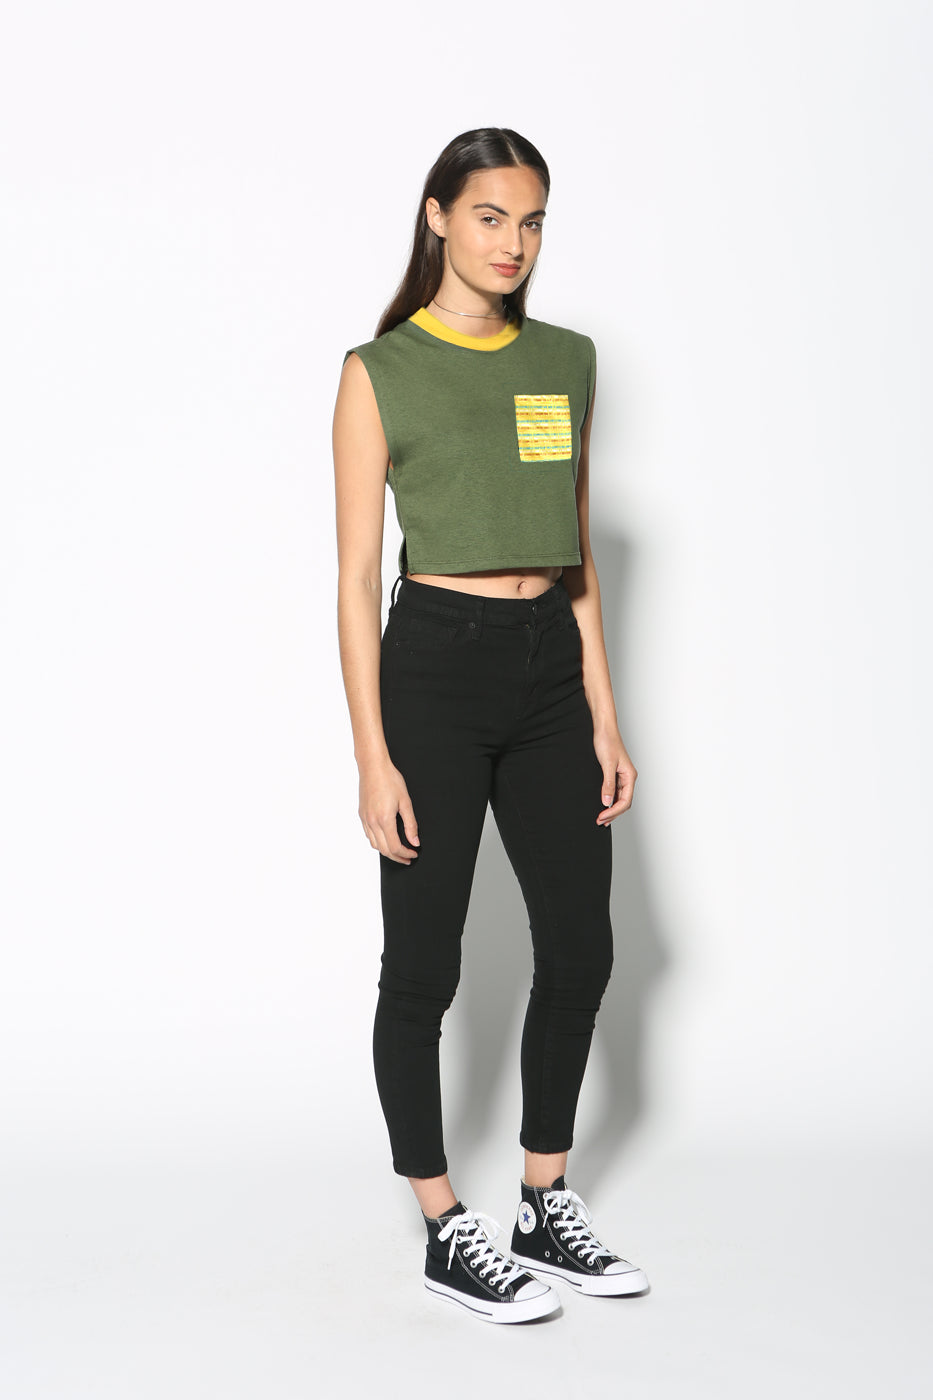 Top - Girls Supporting Girls Cropped Tank